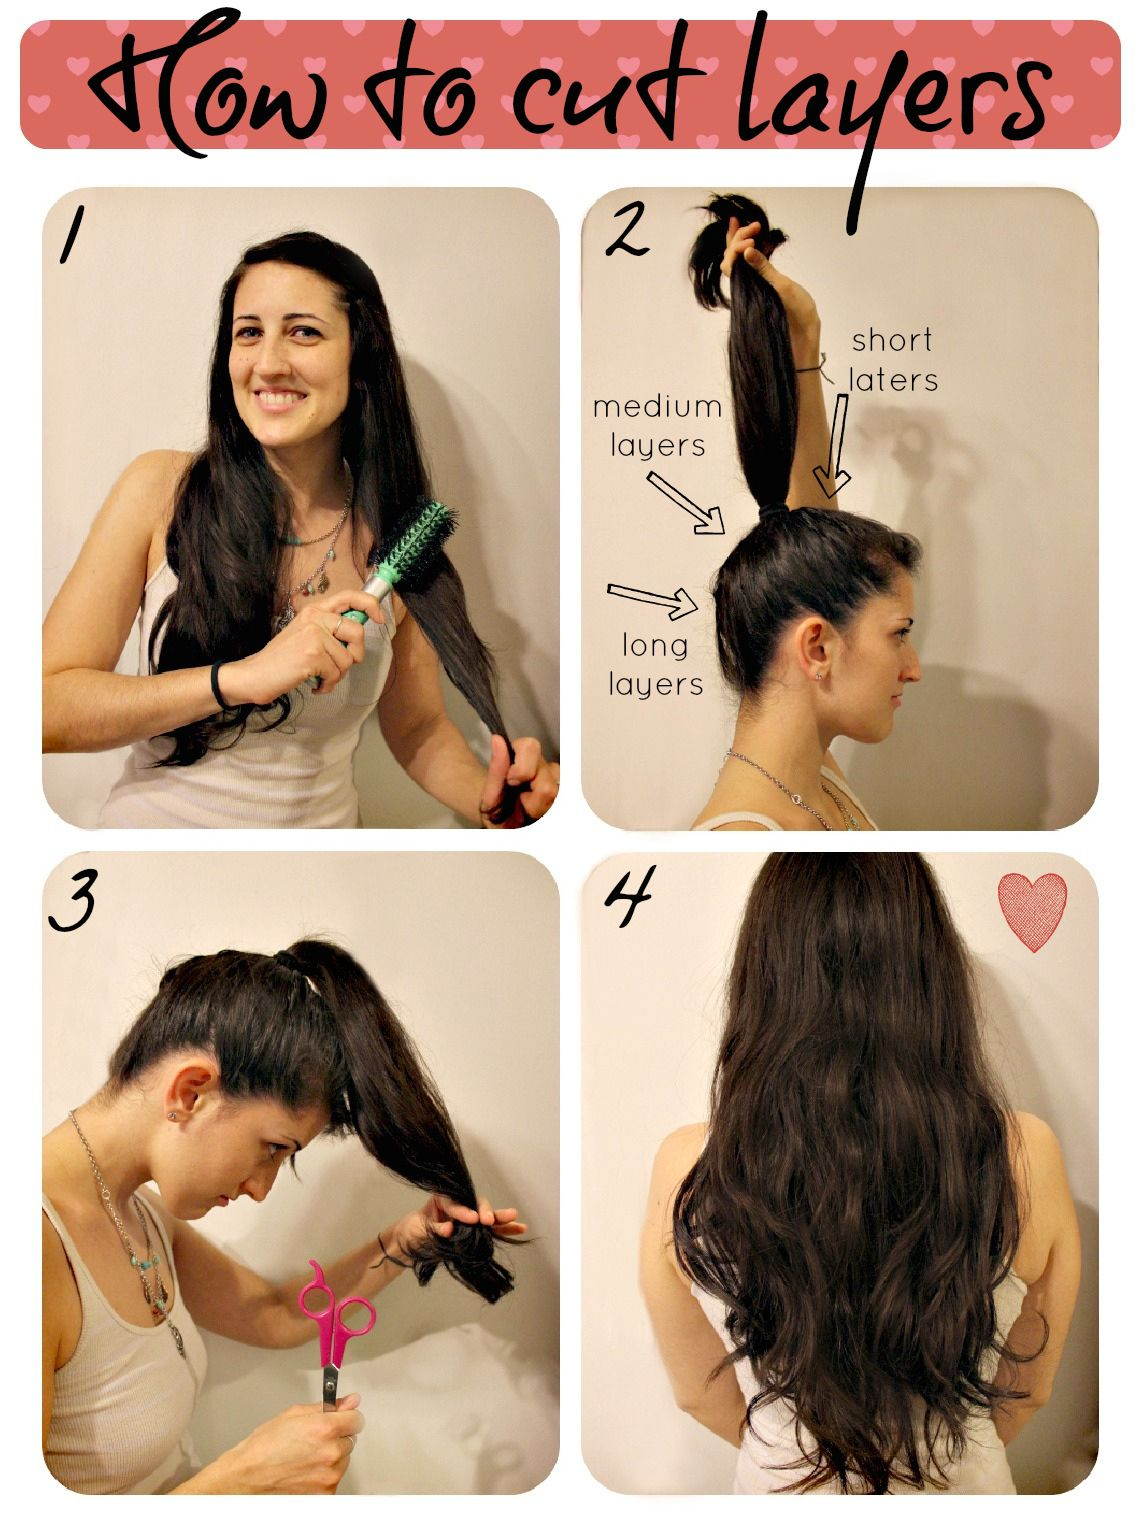 How To Cut Layers H A I R Pinterest Hair Cuts Hair And Hair